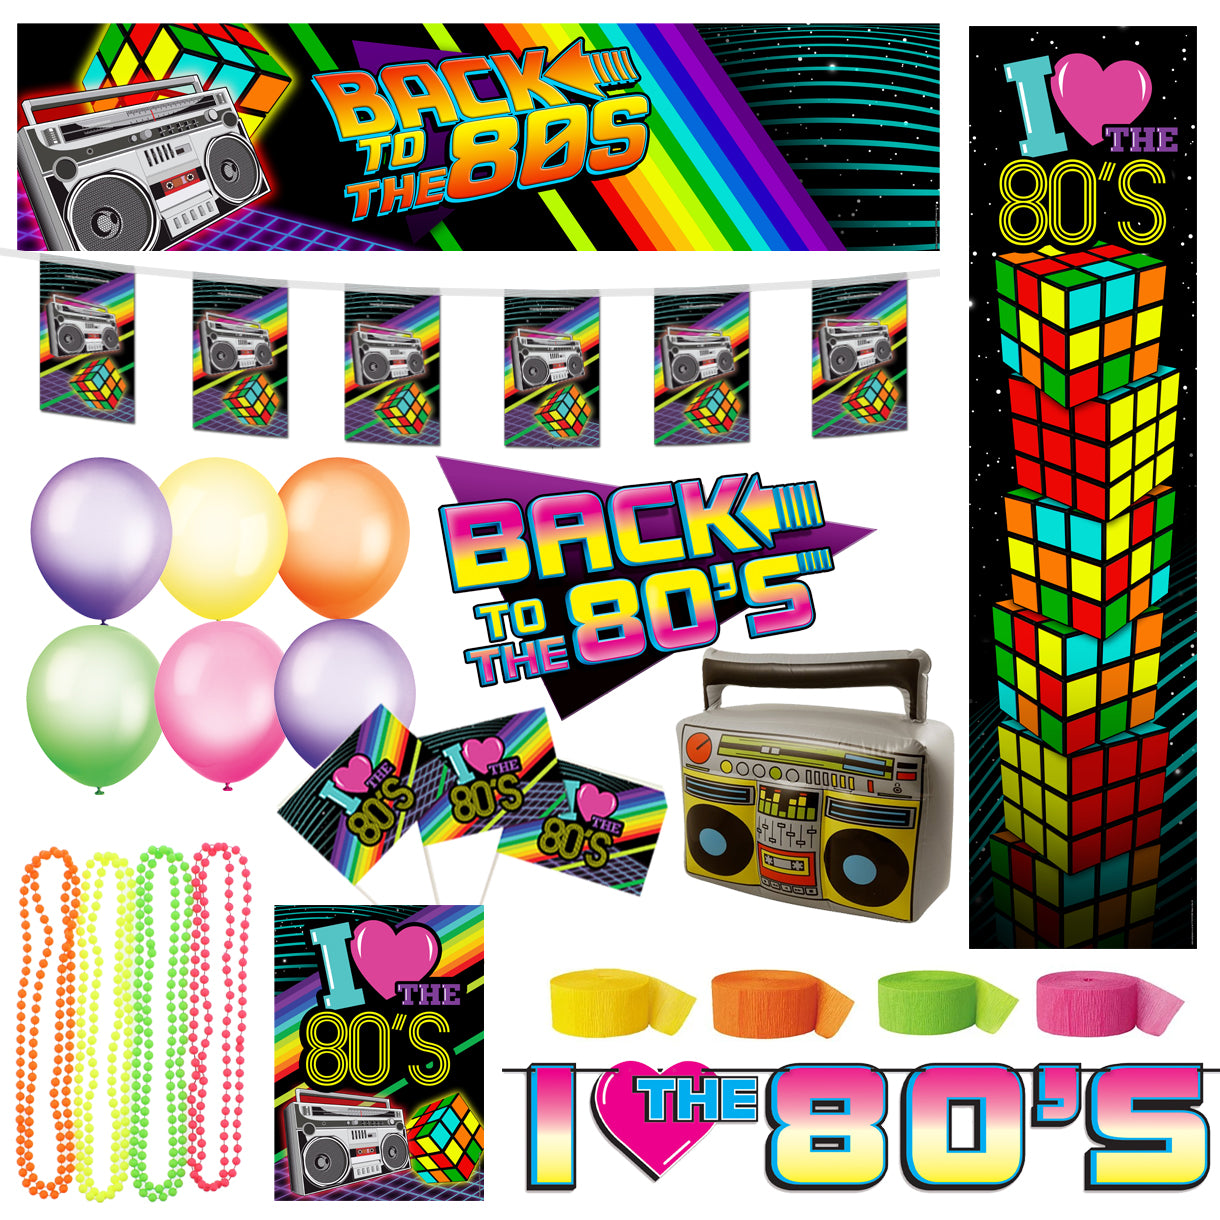 1980's Party Decoration Party Pack